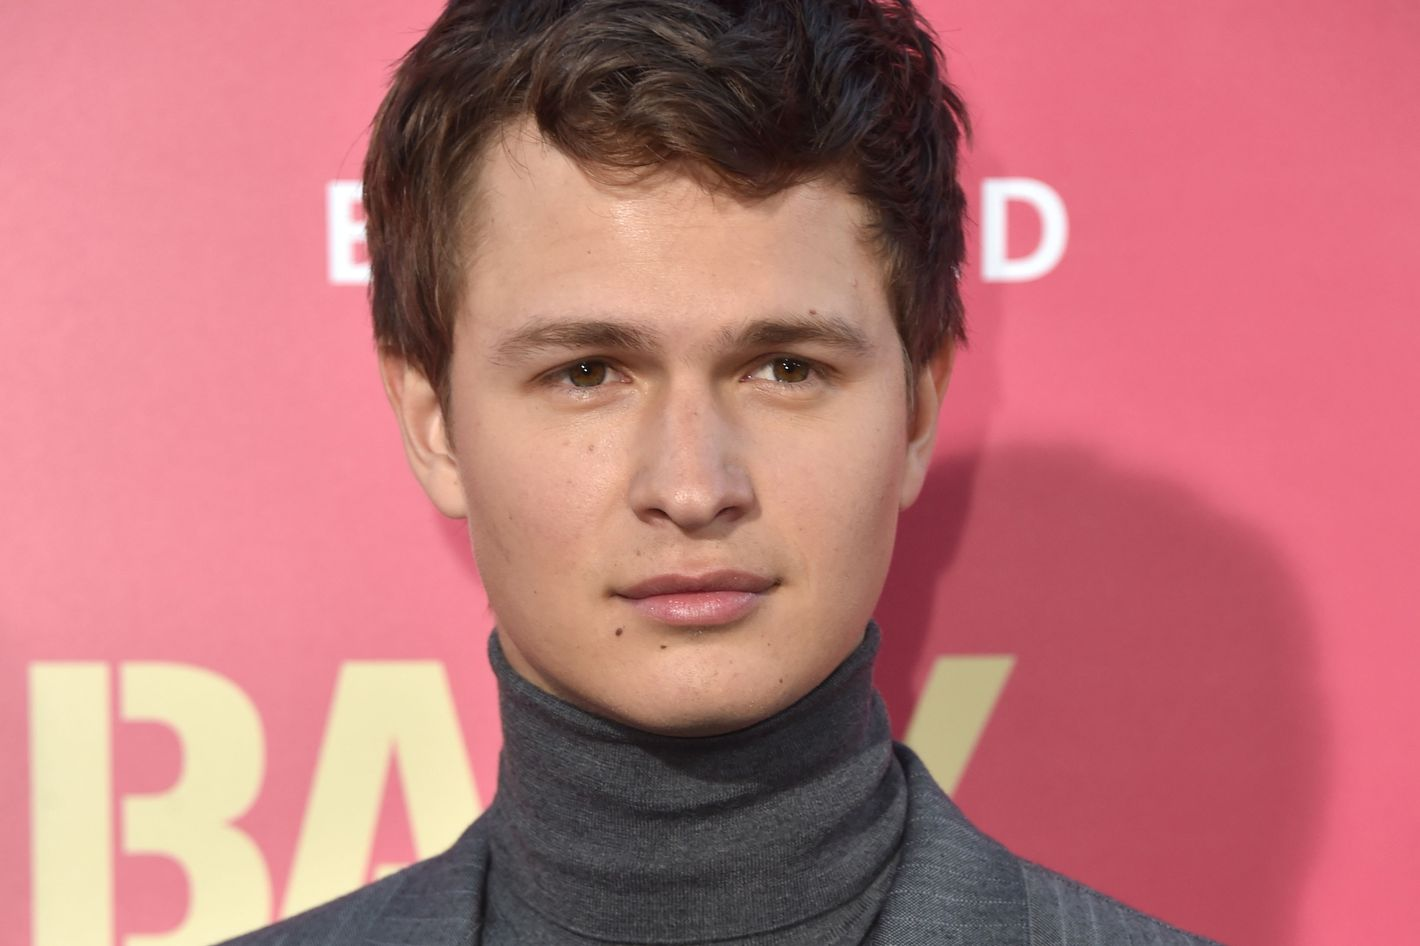 Ansel Elgort Phone number, Email Id, Fanmail, Instagram, Tiktok, and Contact Details